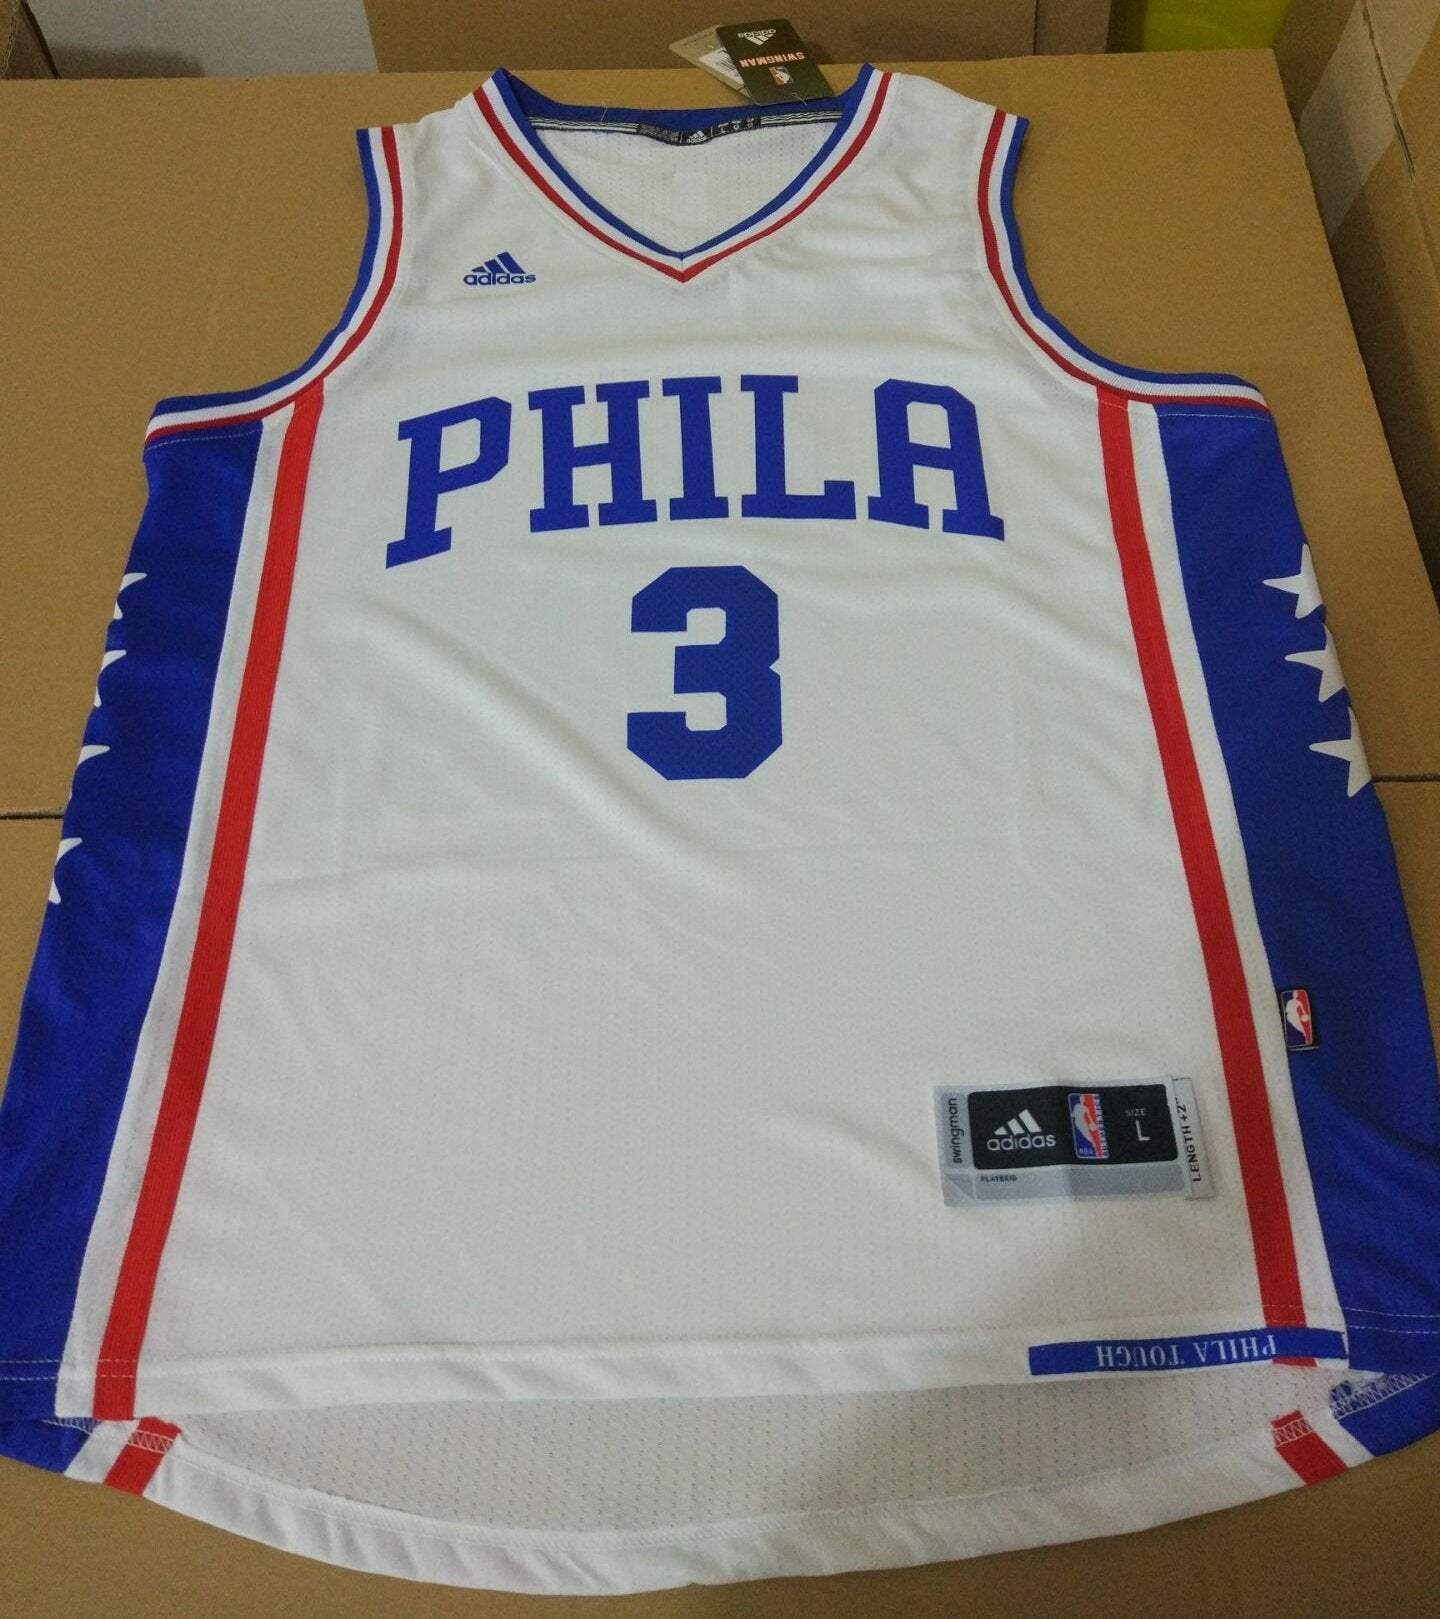 the best attitude dea09 41f56 coupon code for 3 allen iverson jersey c34d7 04b21